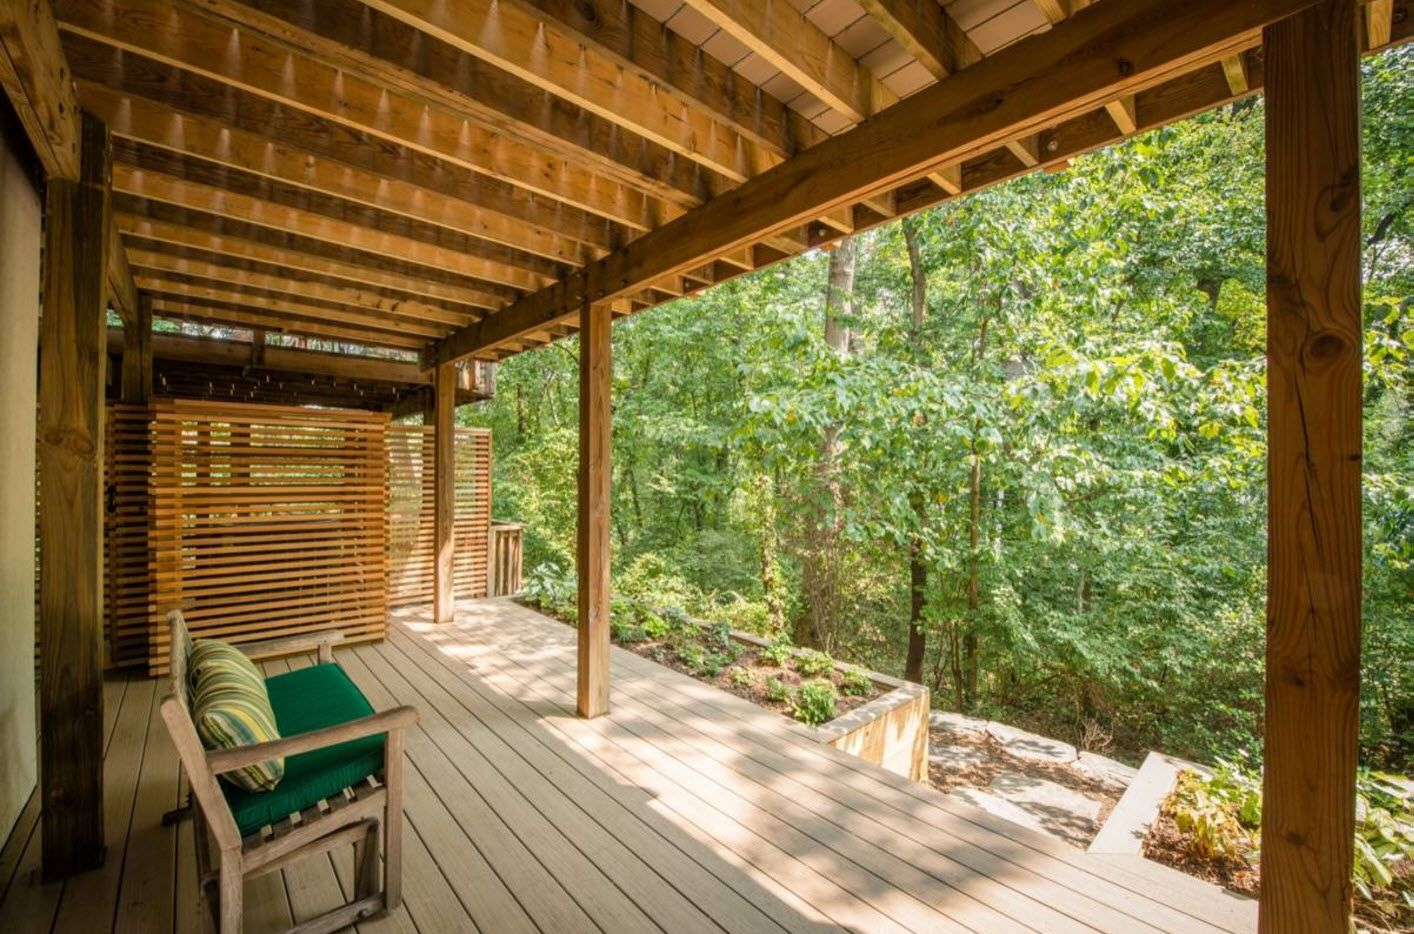 Country House Porch Decoration & Design Ideas. Ecostyle tropic home with wooden canopy and platform